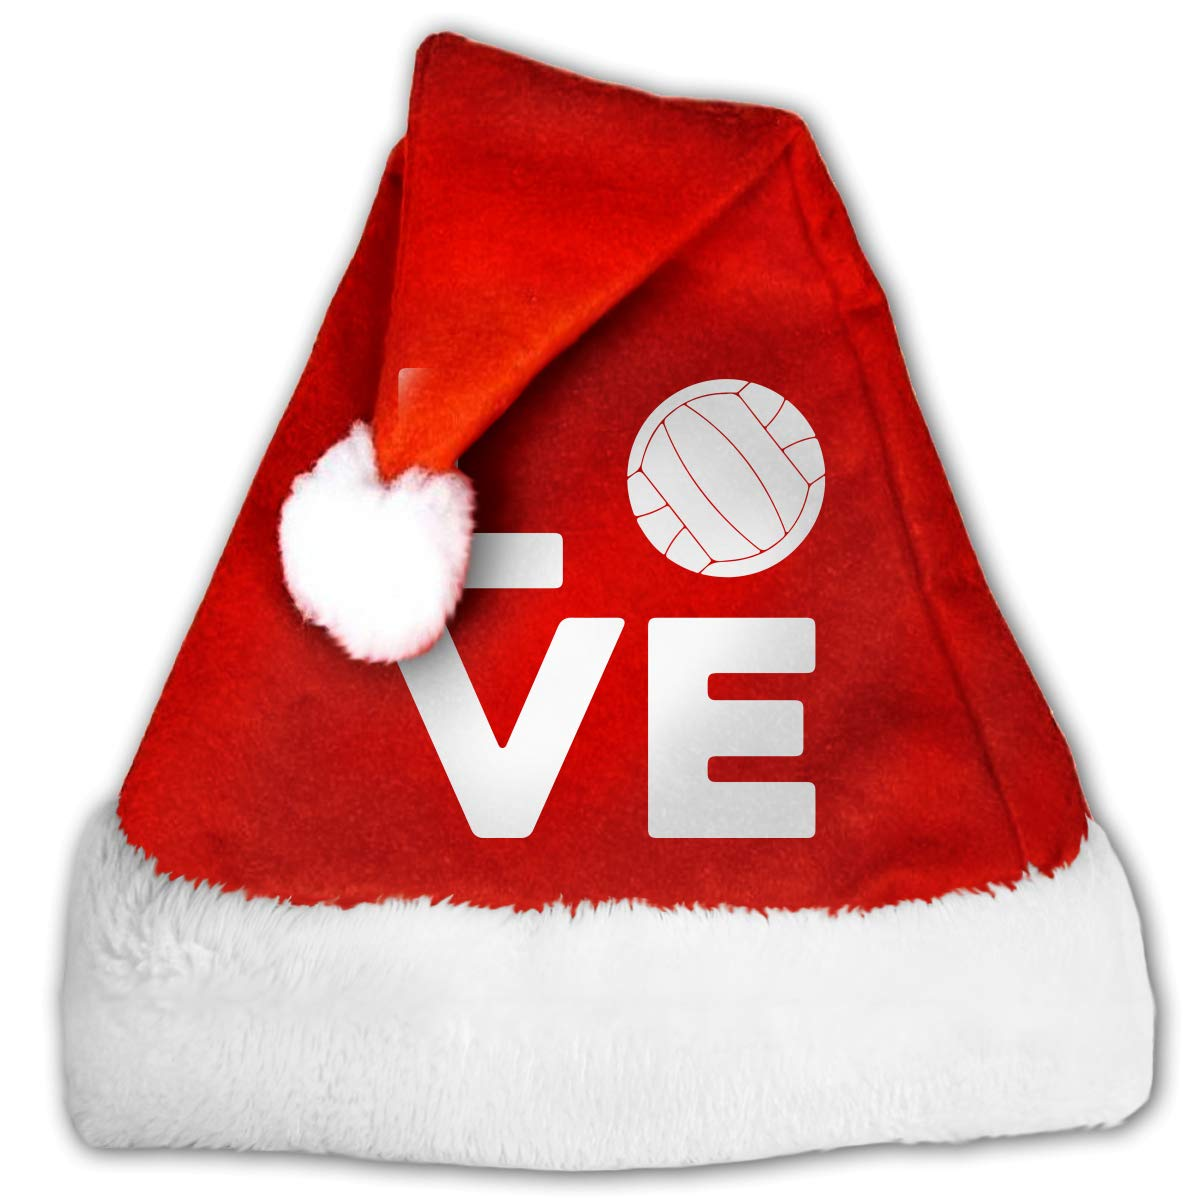 eda471a22 Amazon.com: Love Volleyball Christmas Hat, Red&White Xmas Santa Claus' Cap  for Holiday Party Hat: Clothing